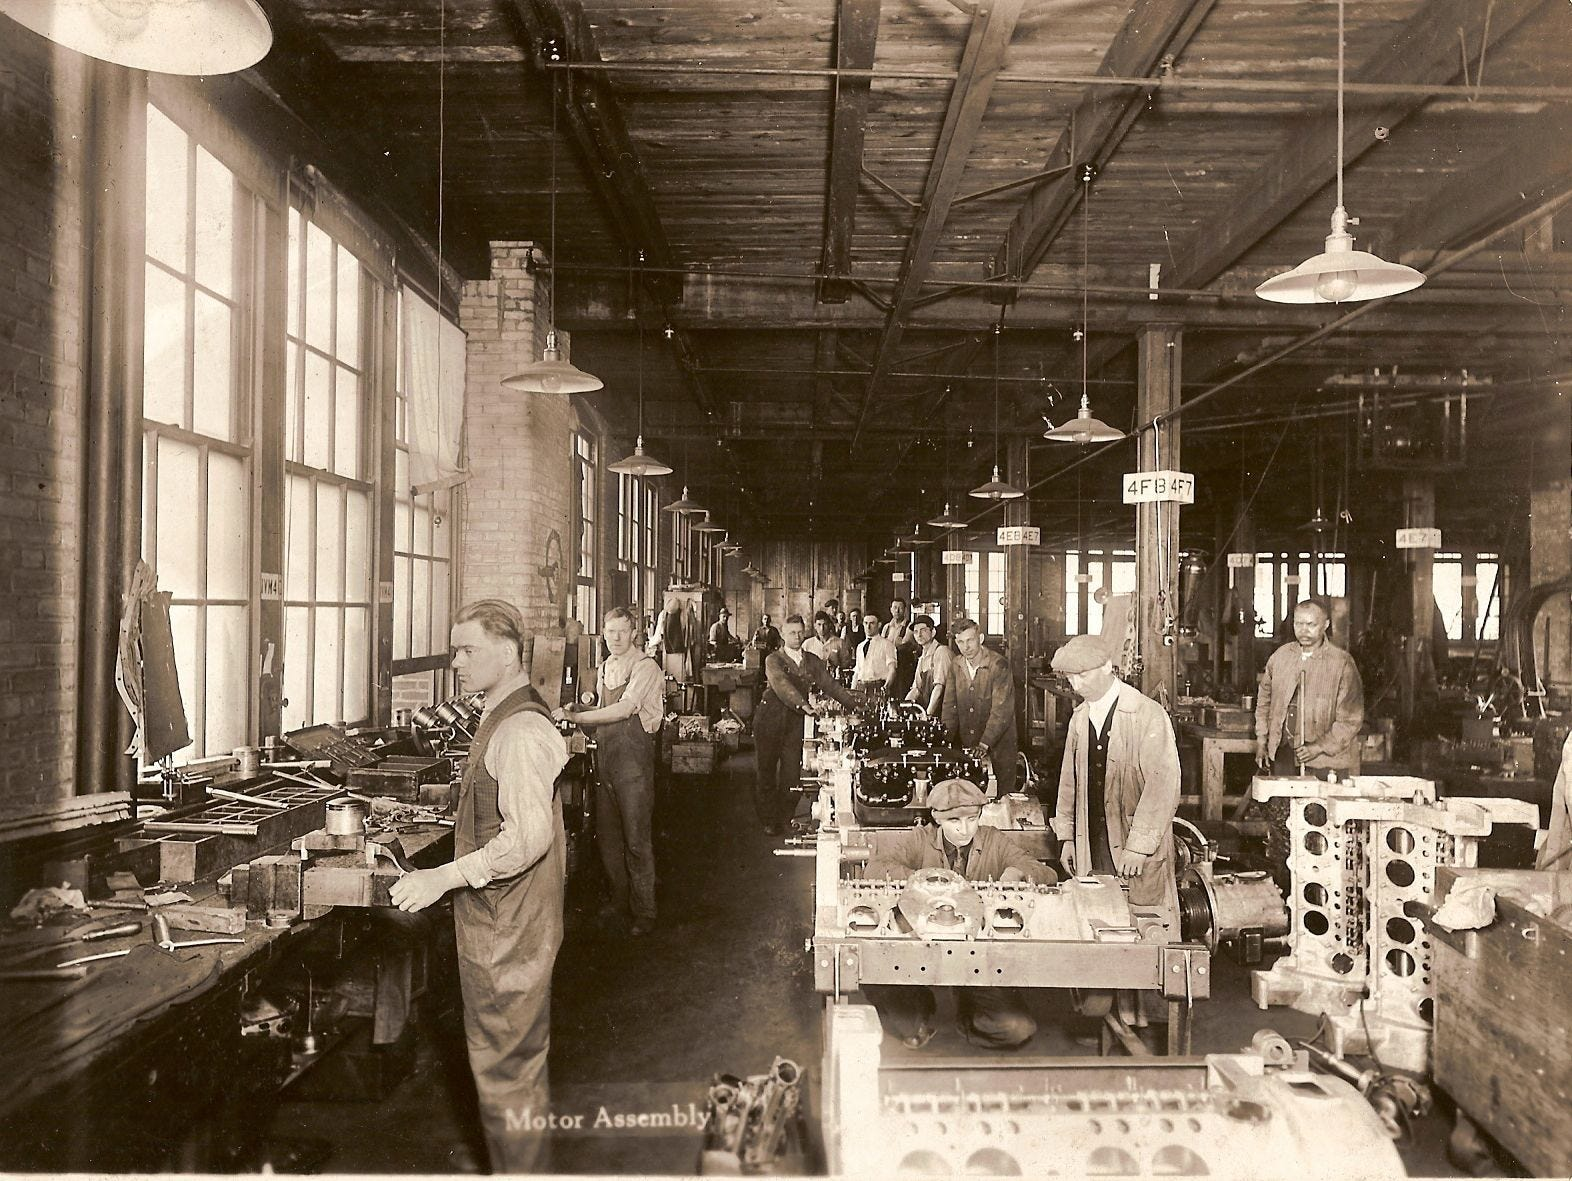 A circa 1920 image from the former Cunningham Carriage Factory on Litchfield Street.